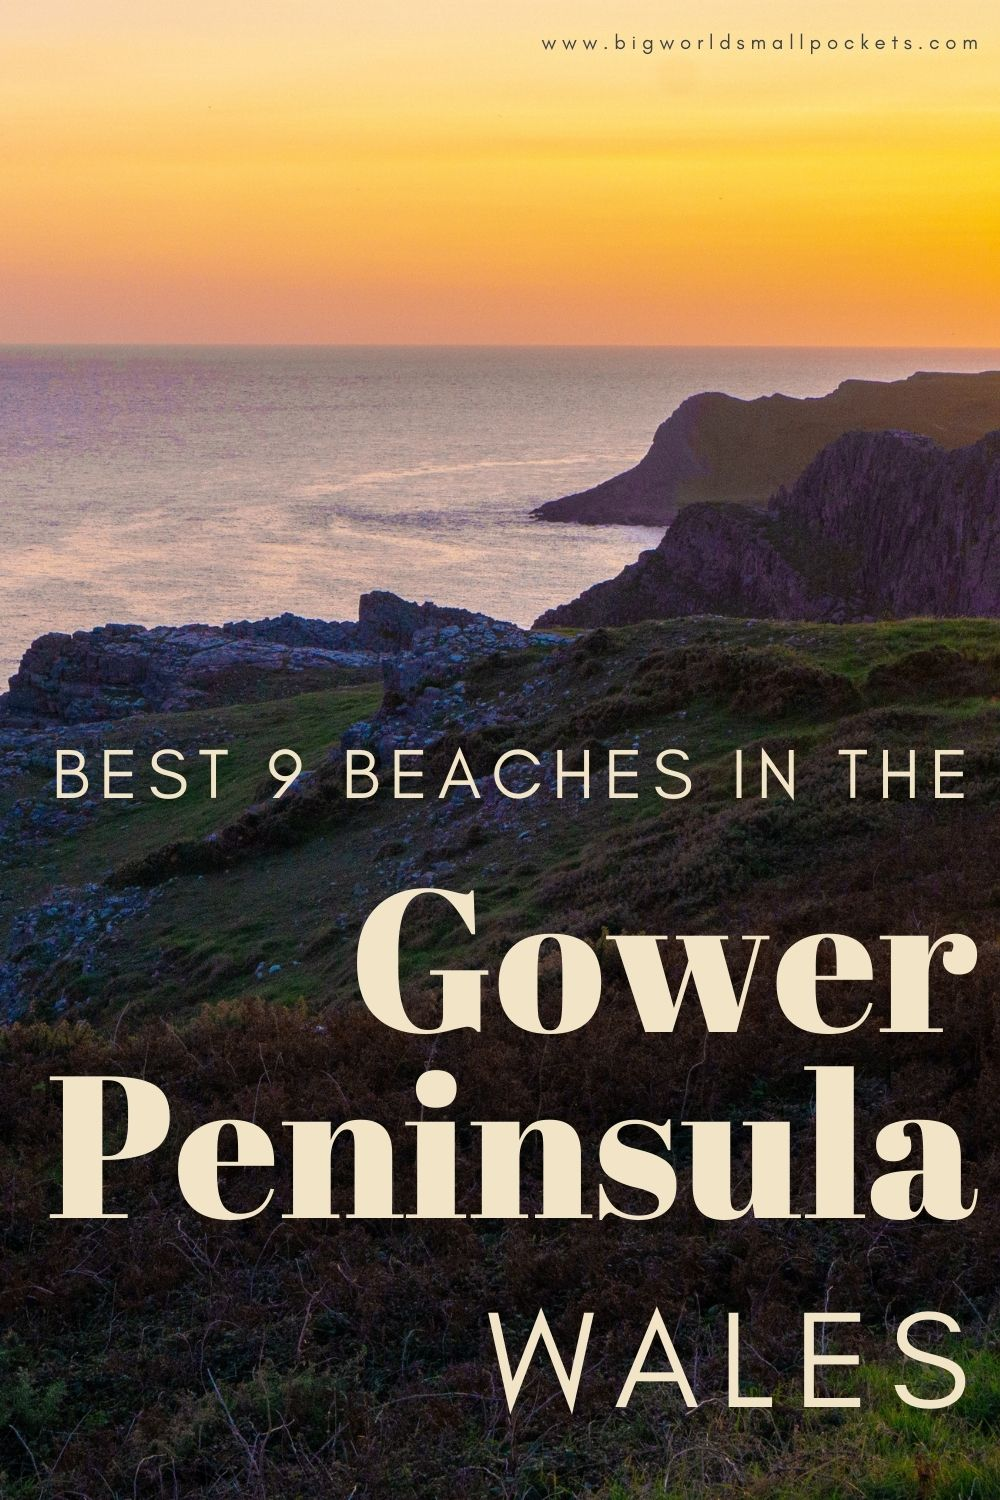 Best 9 Beaches on the Gower Peninsula, Wales